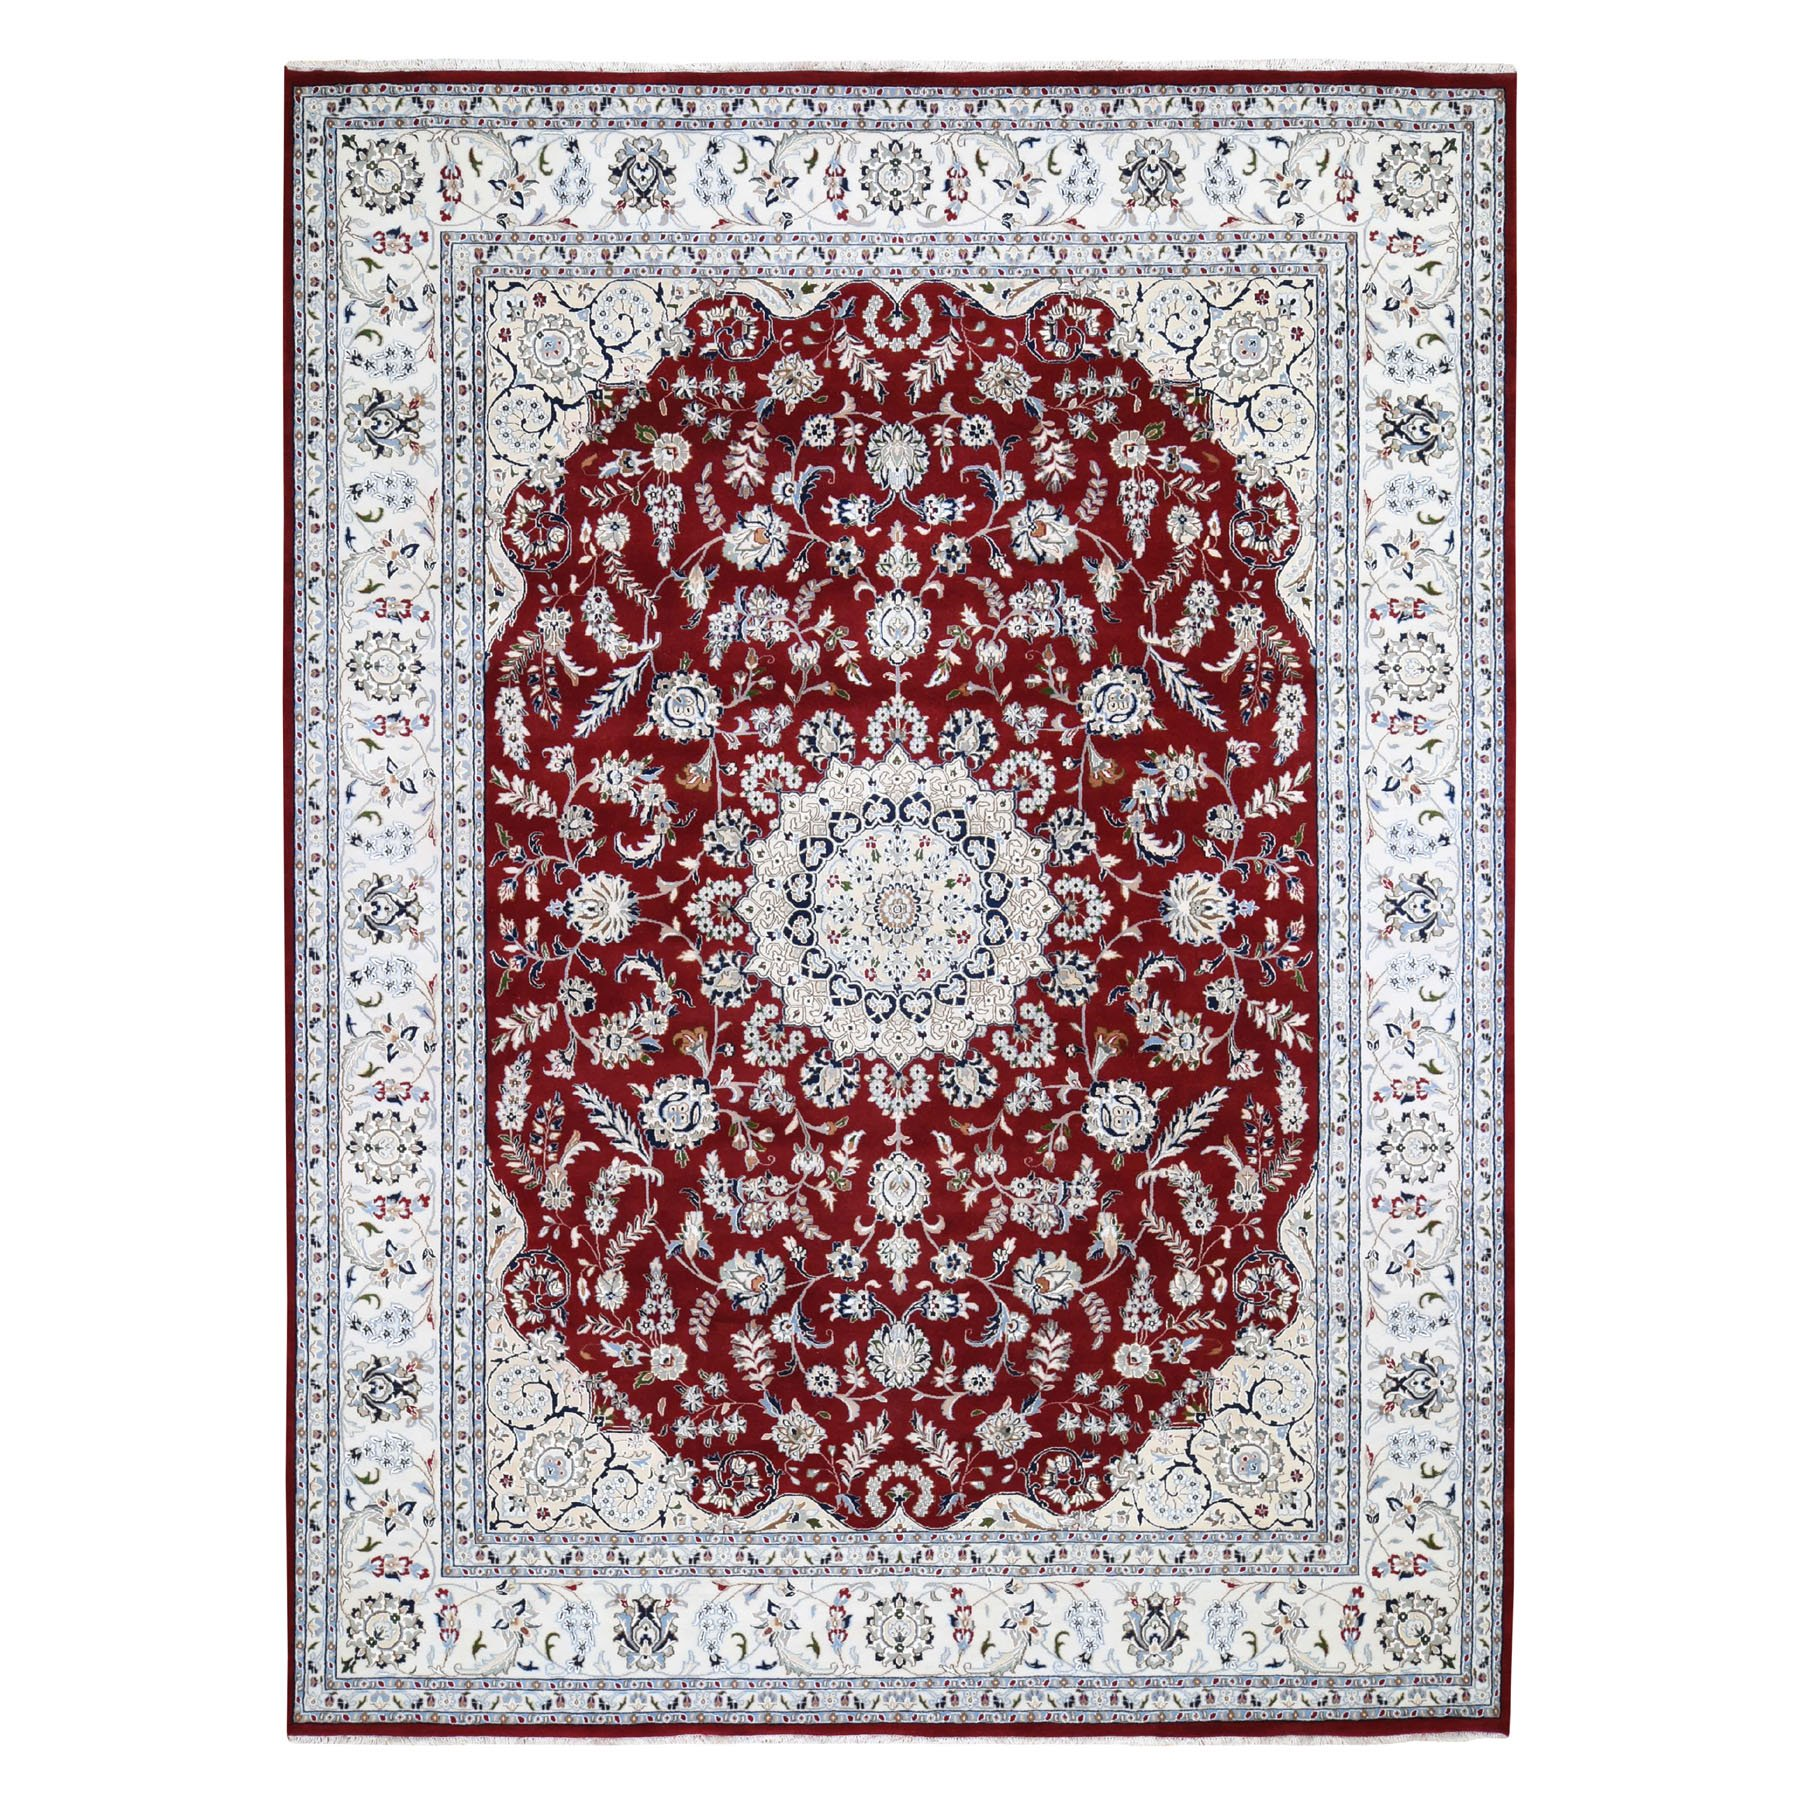 Pirniakan Collection Hand Knotted Red Rug No: 0195624